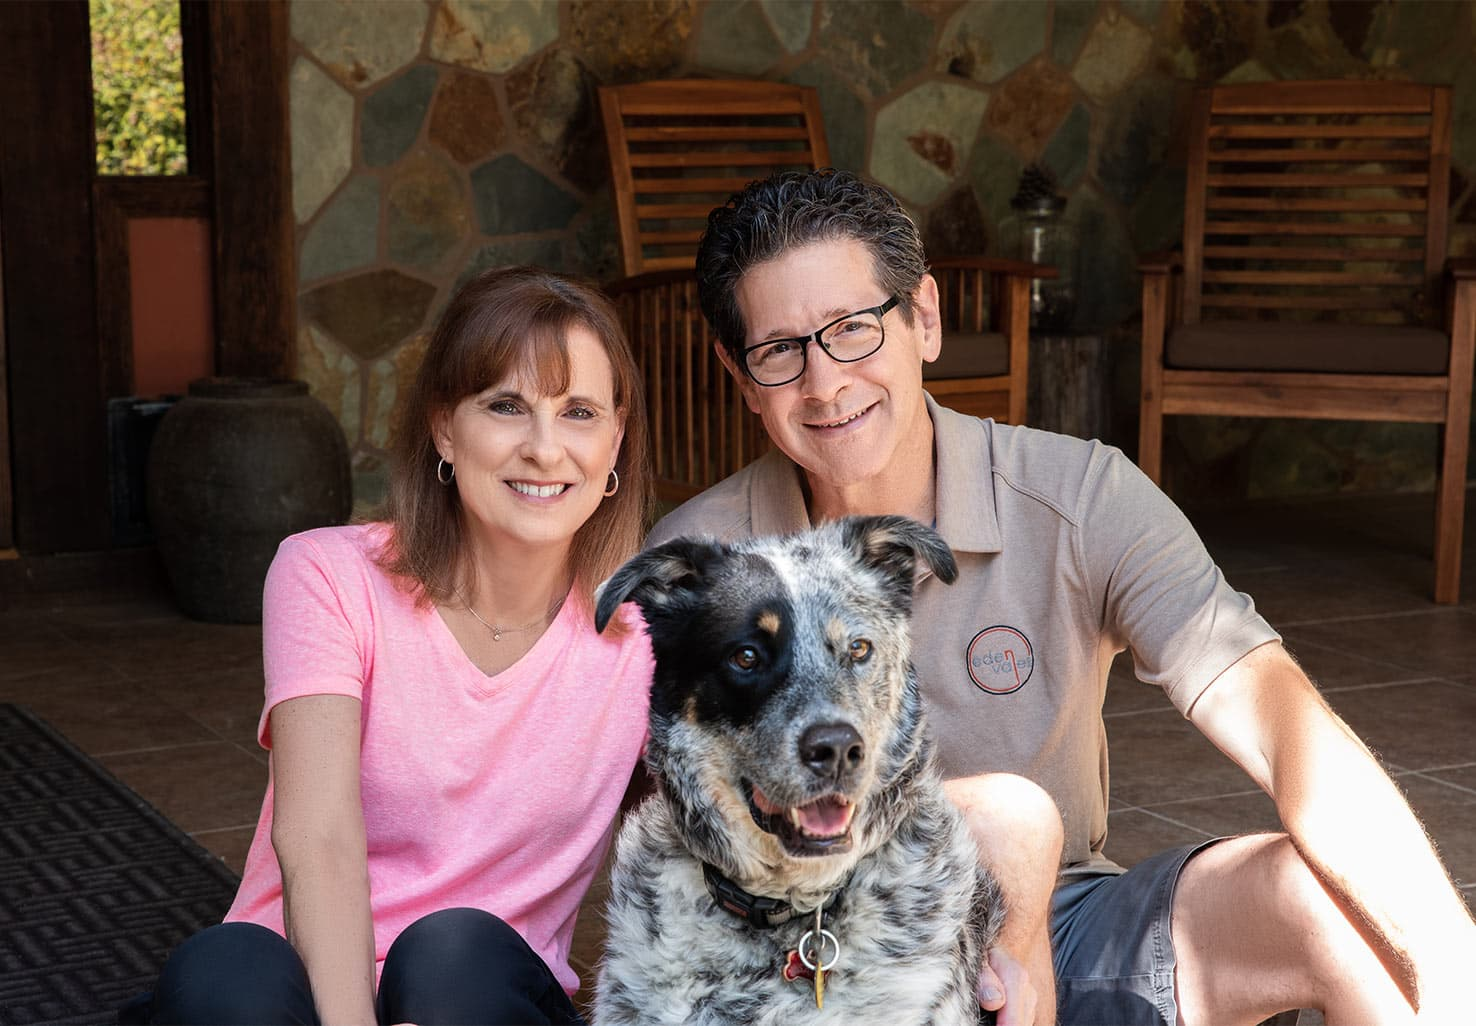 Our Northern CA B&B Innkeepers David and Karen with their dog Sam